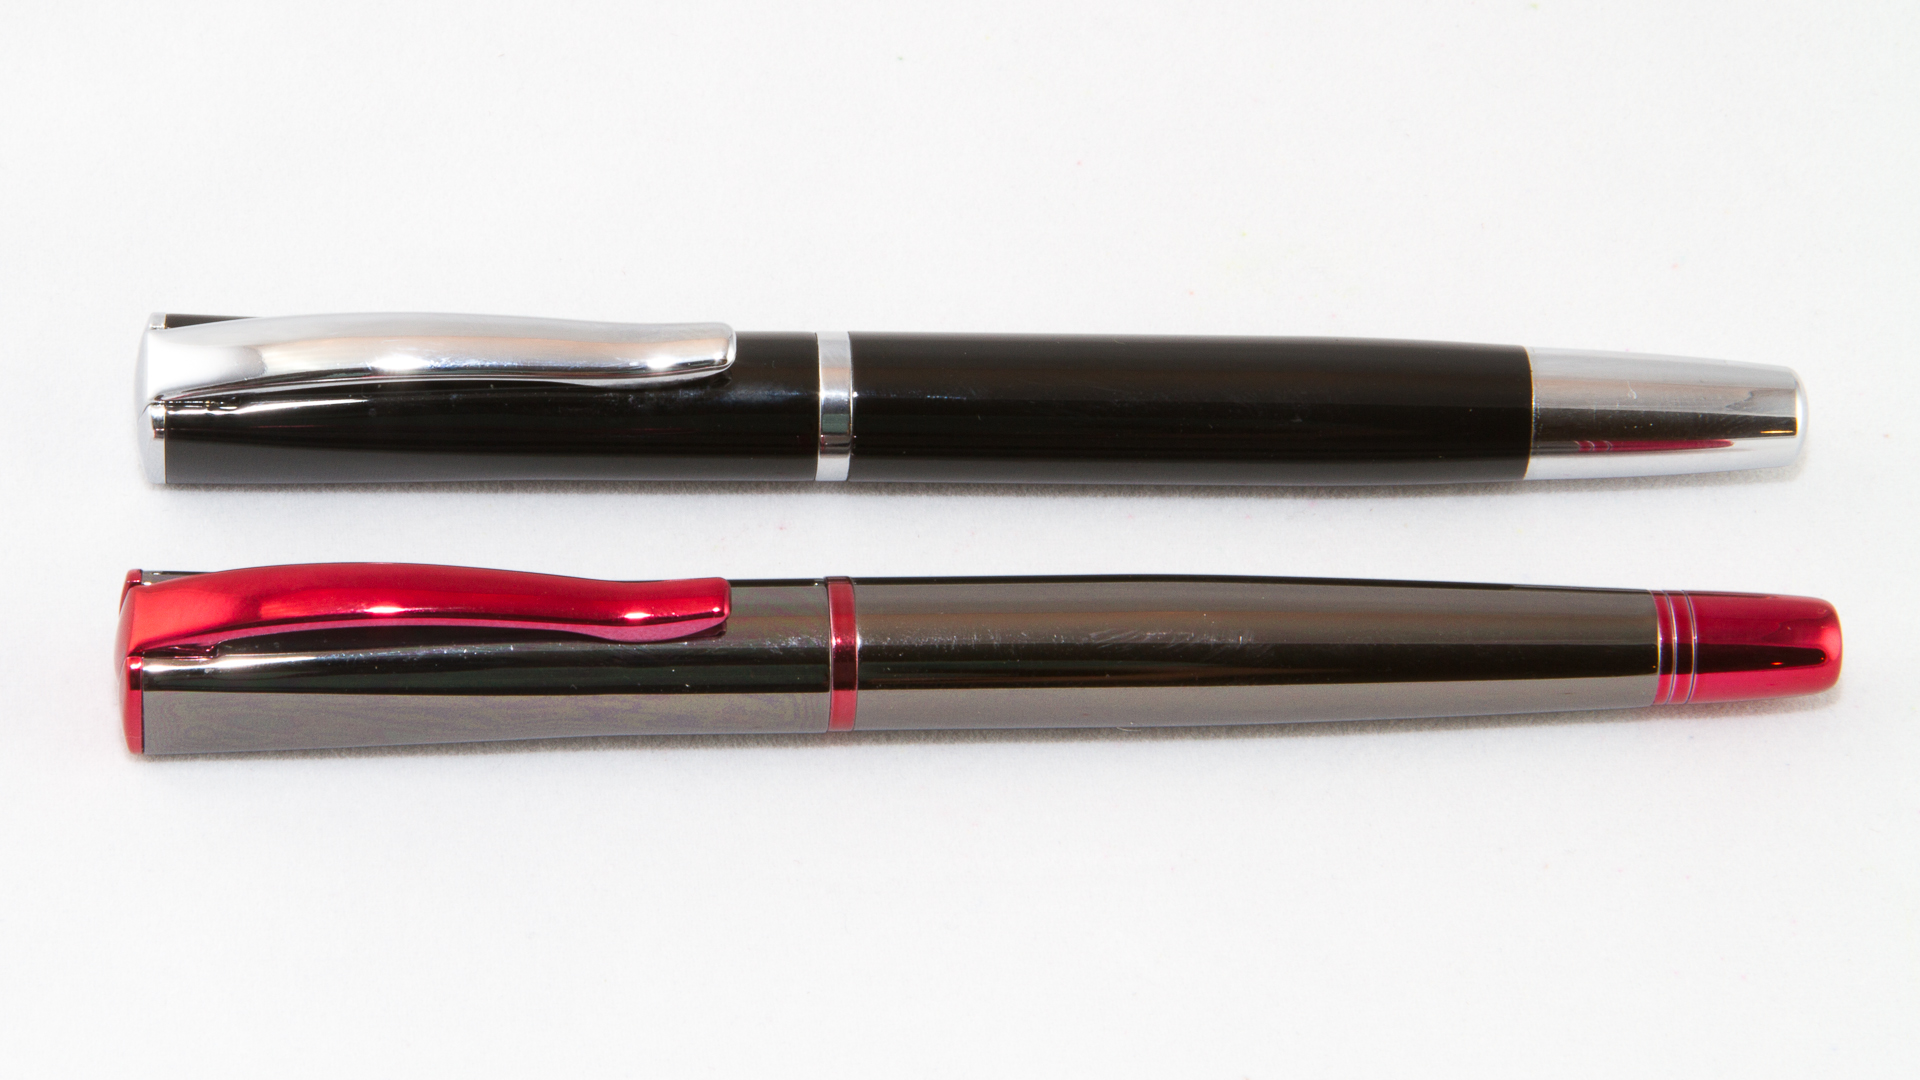 Comparison to the Monteverde Impressa